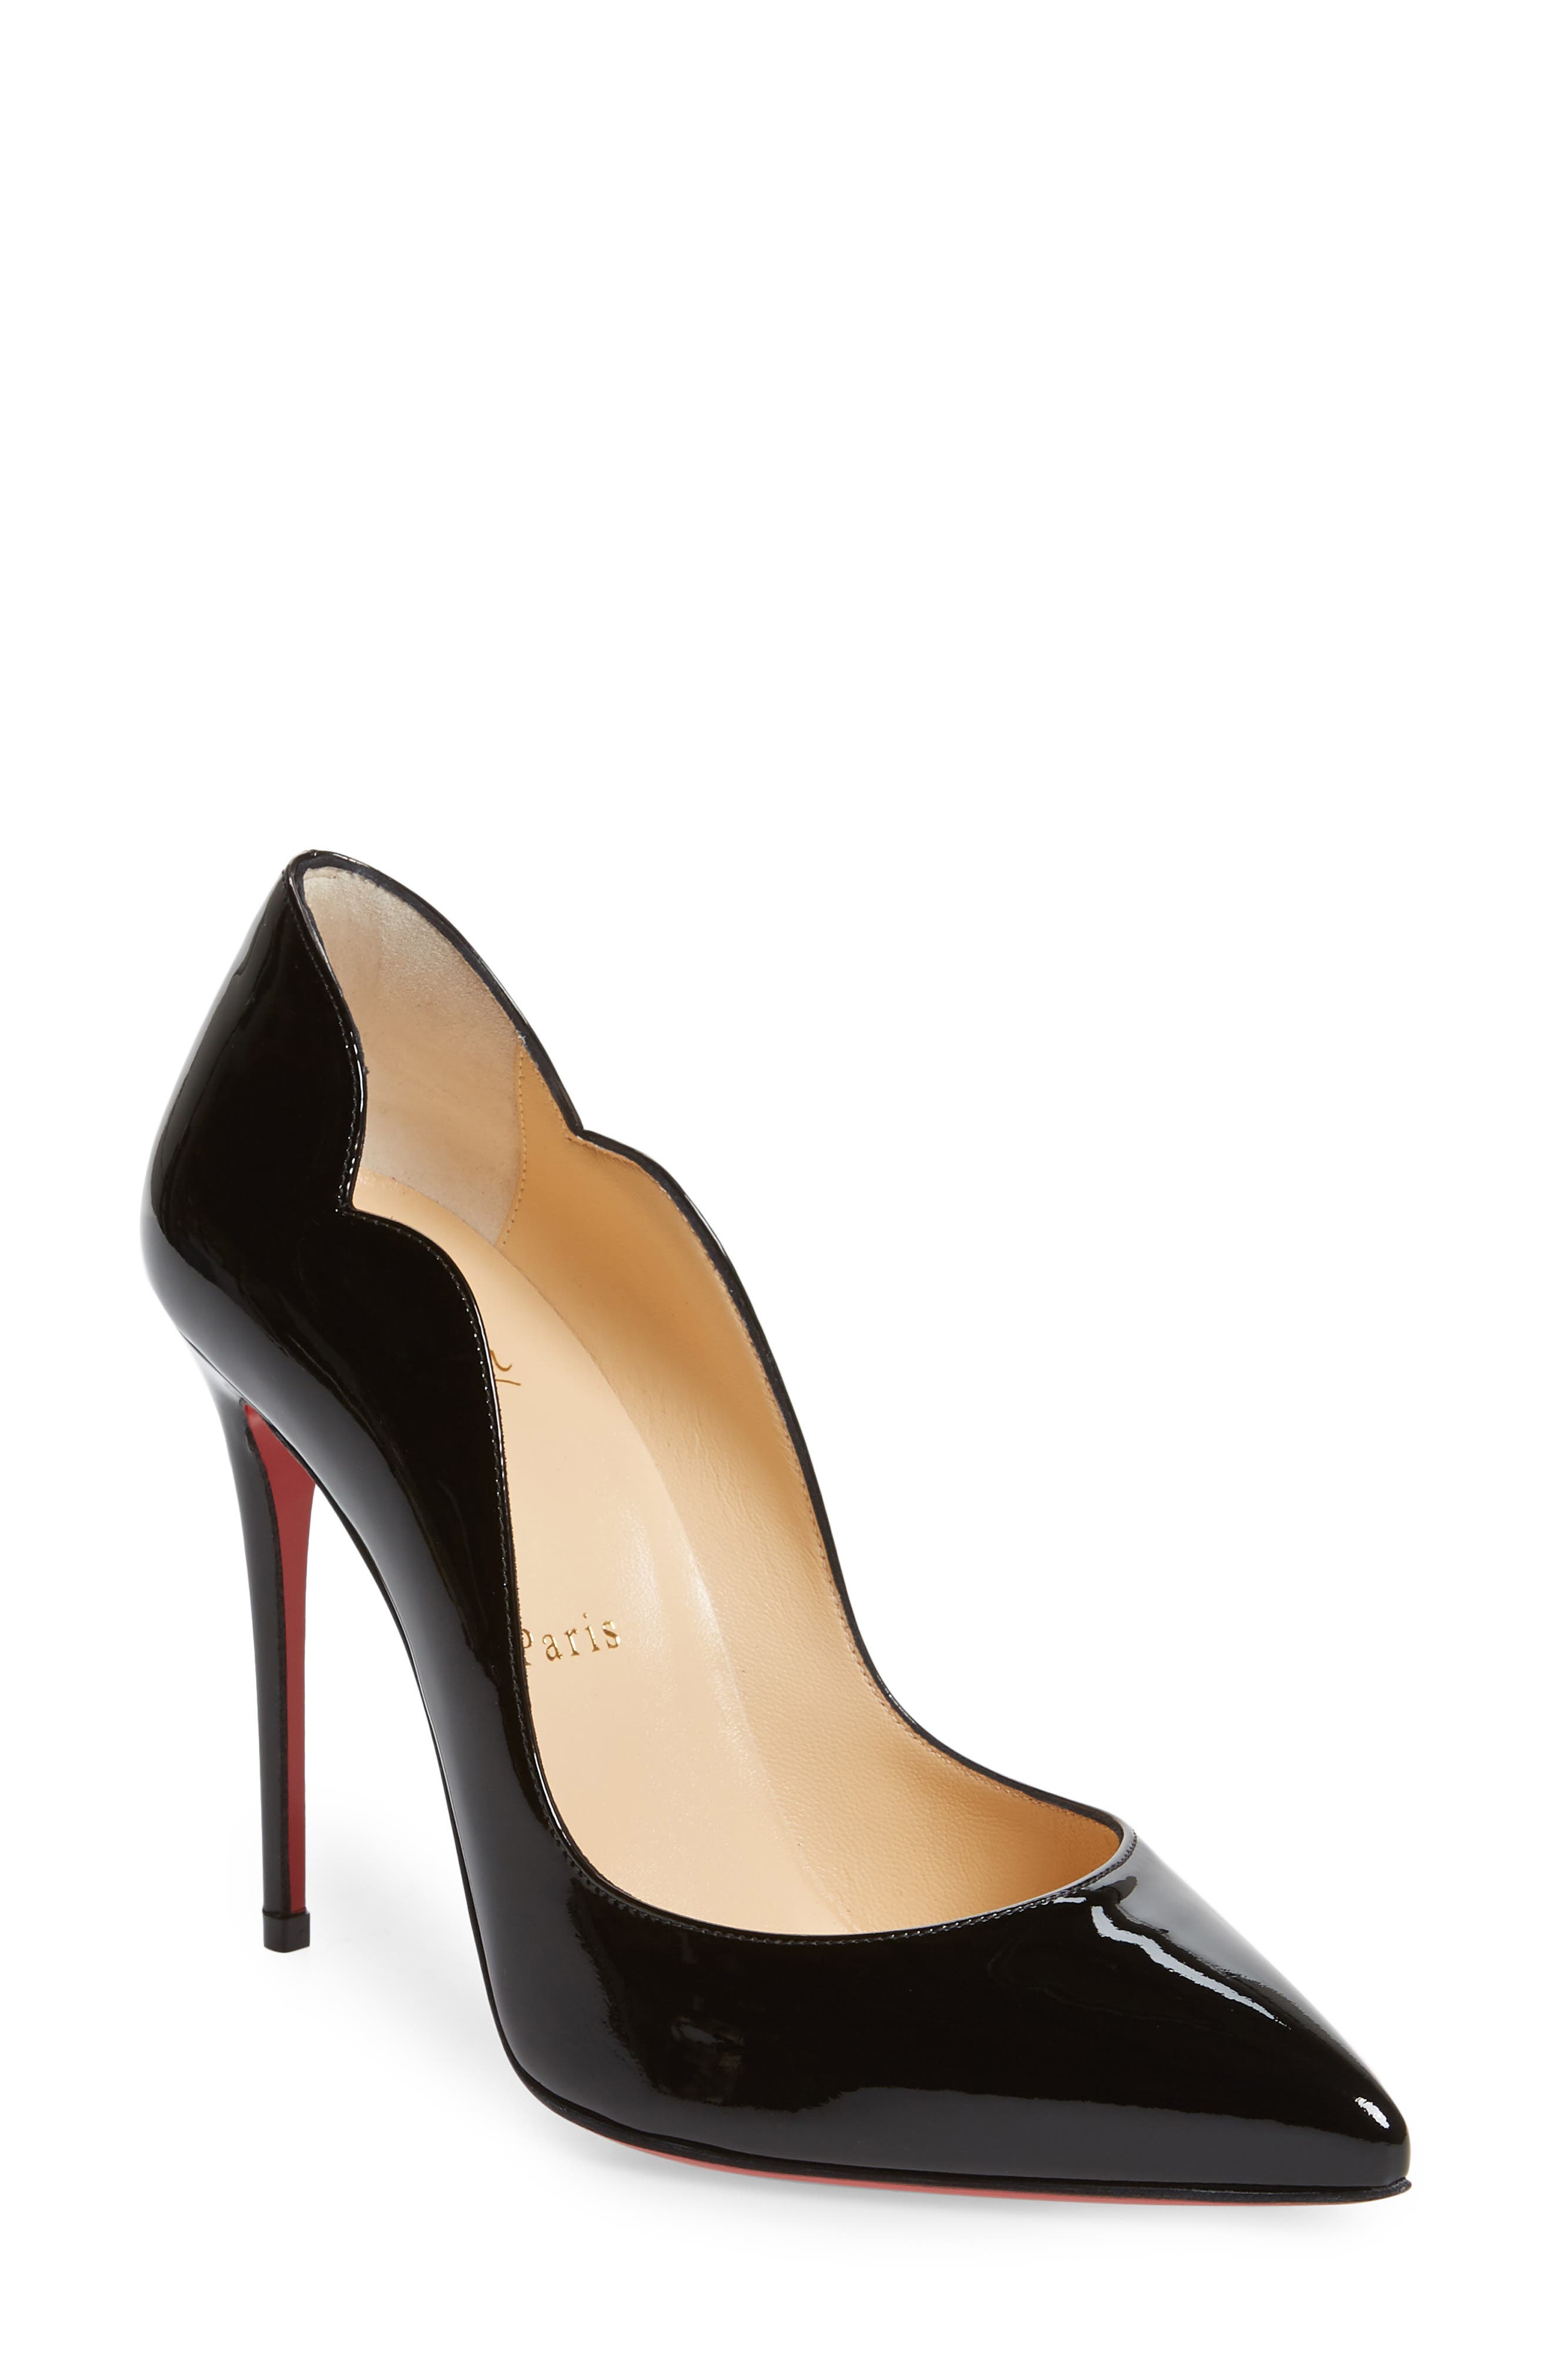 Hot Chick 100 Patent Red Sole Pumps in Black Patent